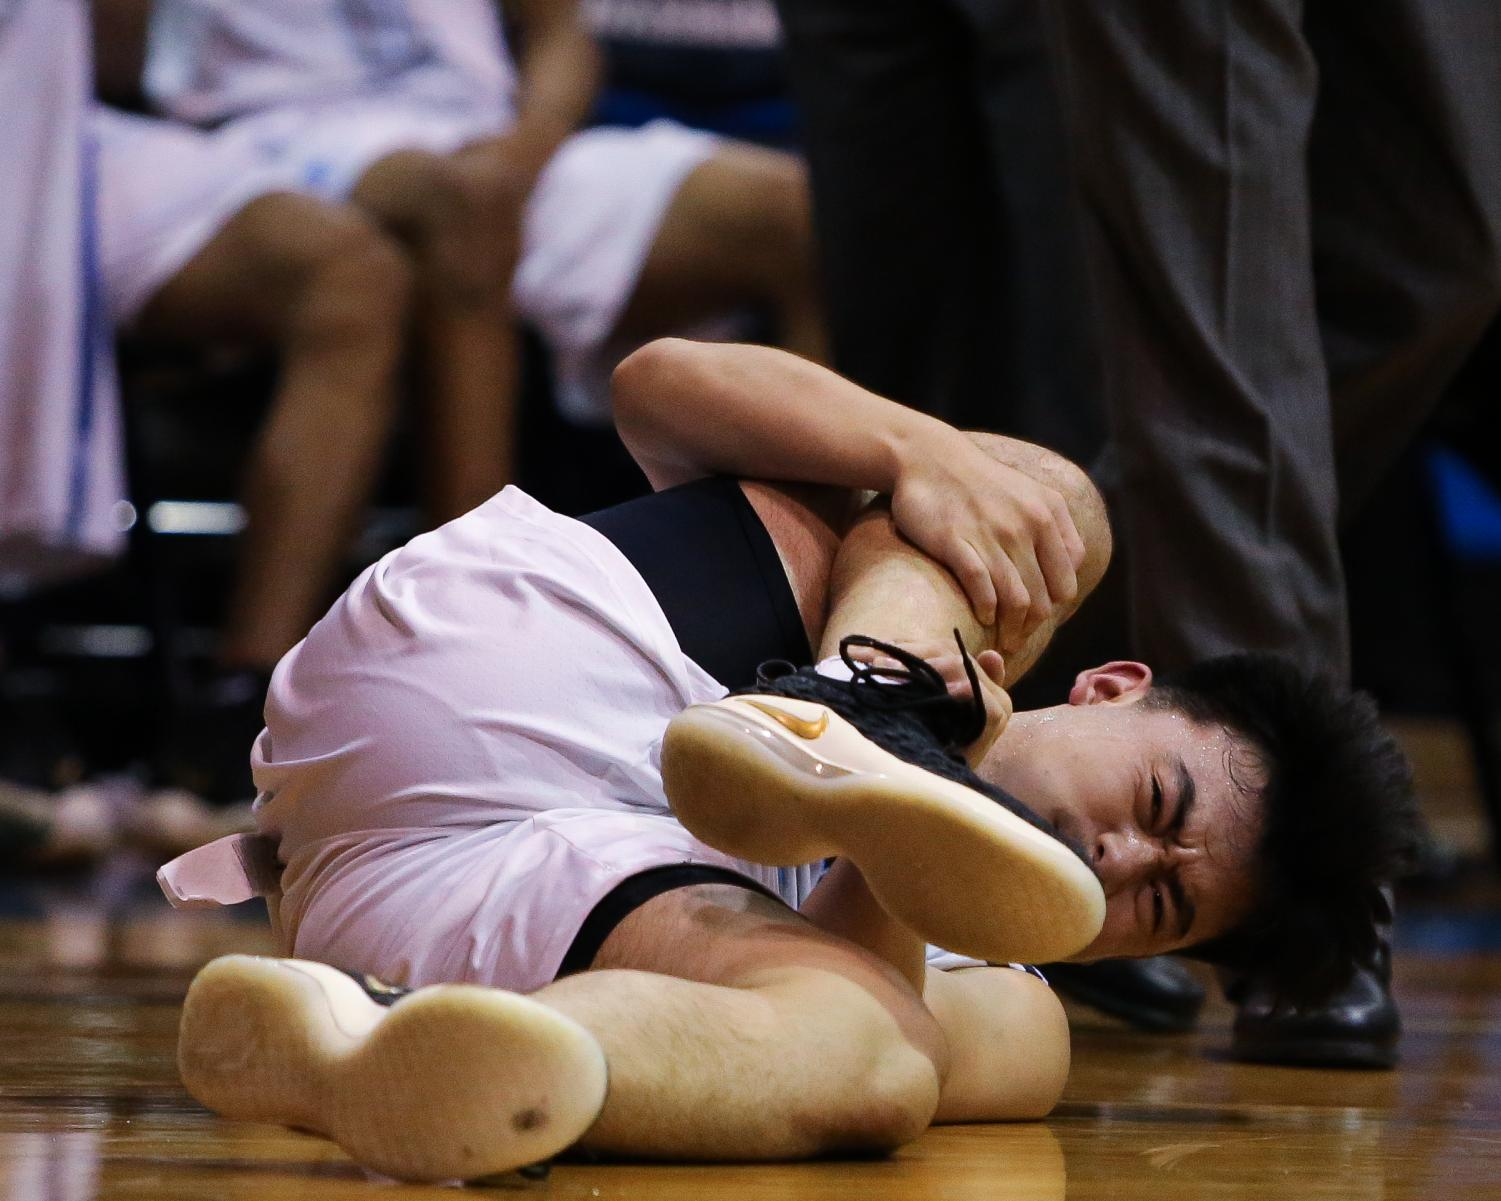 EC Warriors guard, Kyle Baba, suffers a right leg injury in the dying seconds of the game on a layup attempt, during the EC Warriors vs Pasadena City College men's basketball game at El Camino on Friday, Nov. 9. Photo credit: Darwyn Samayoa